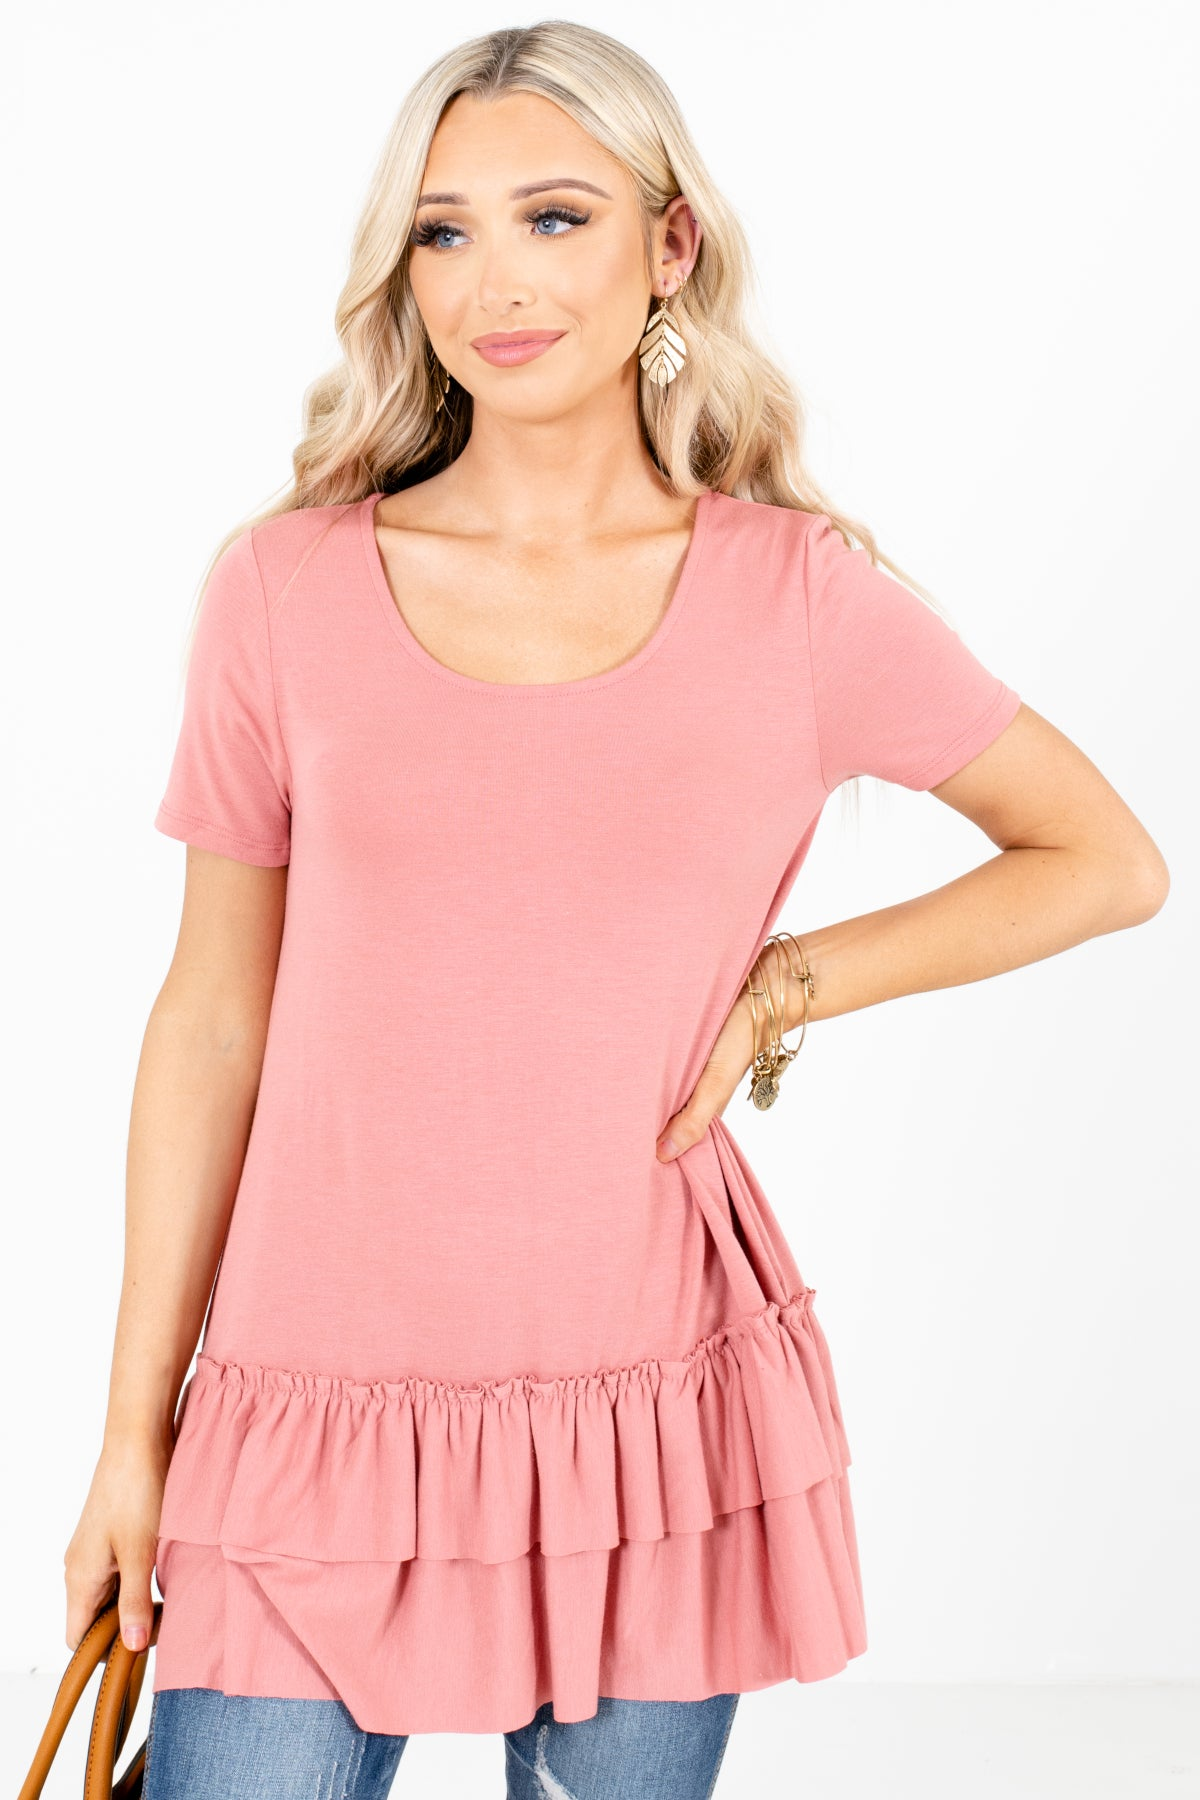 Pink Peplum Style Hem Boutique Tops for Women